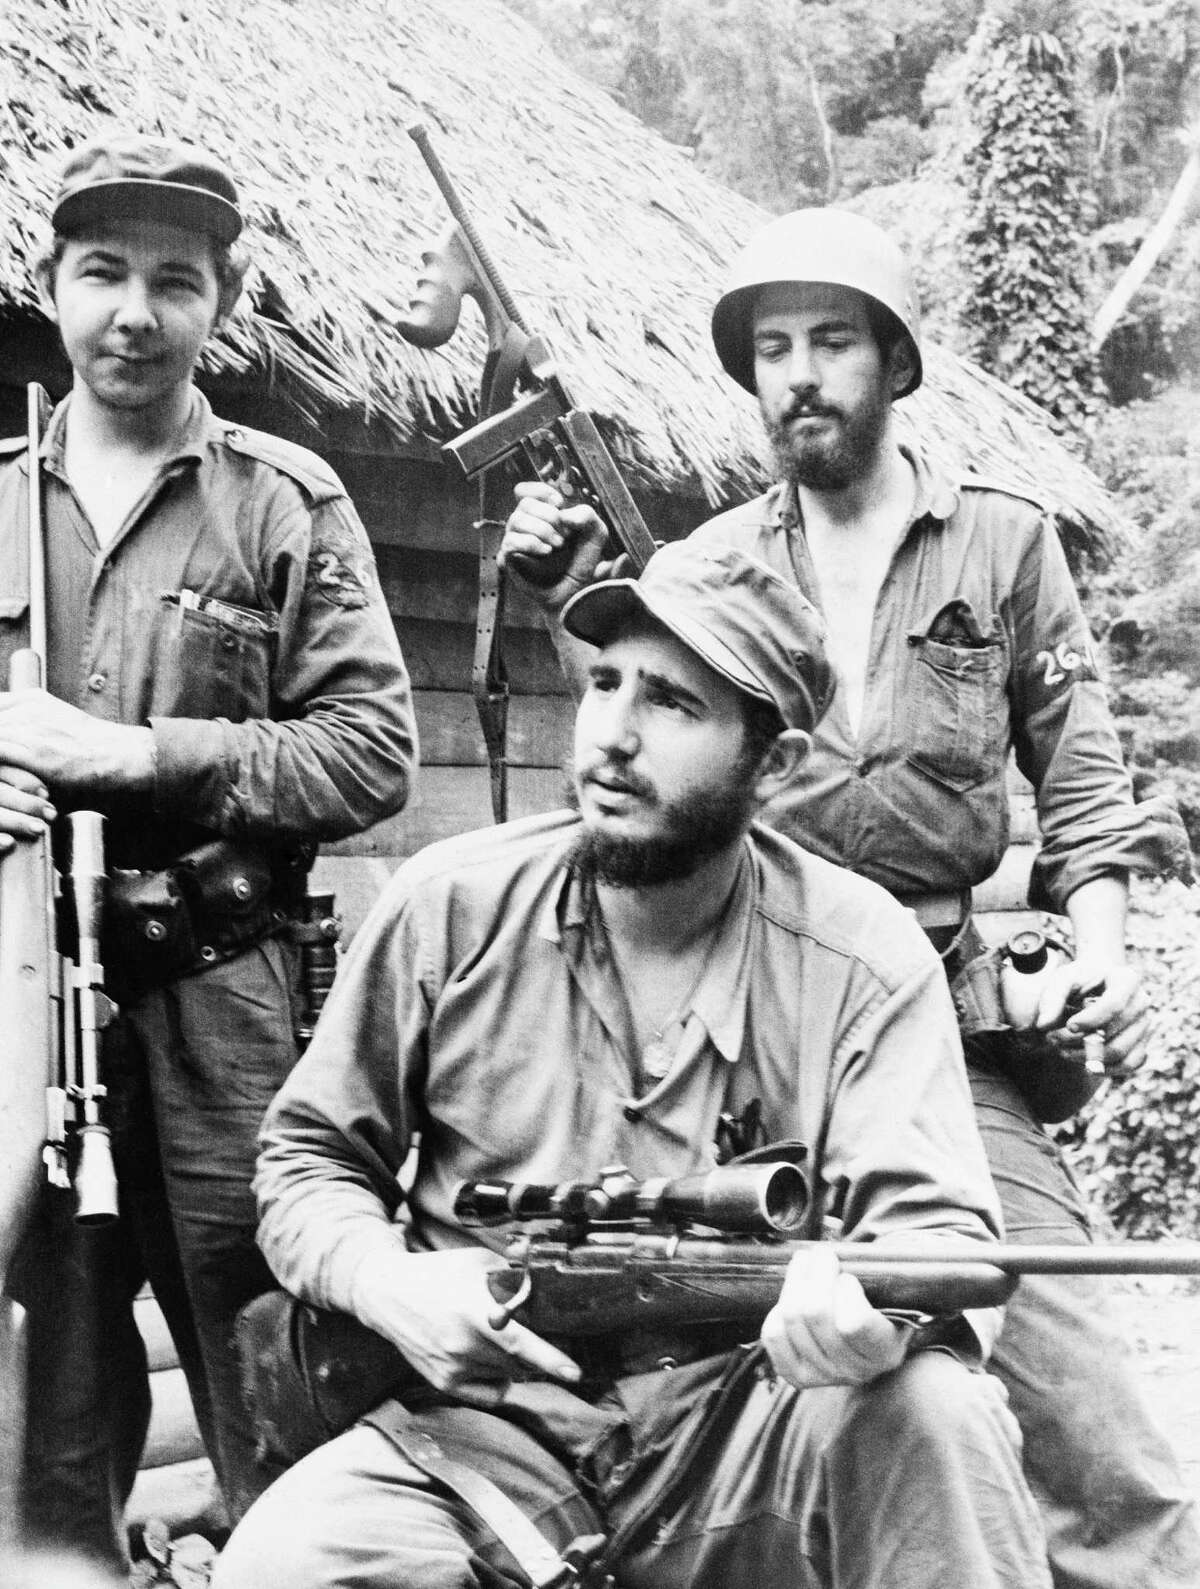 Key dates in U.S. relations with Cuba Jan. 1, 1959: Fidel Castro's rebels take power as dictator Fulgencio Batista flees Cuba. The United States soon recognizes the new government.